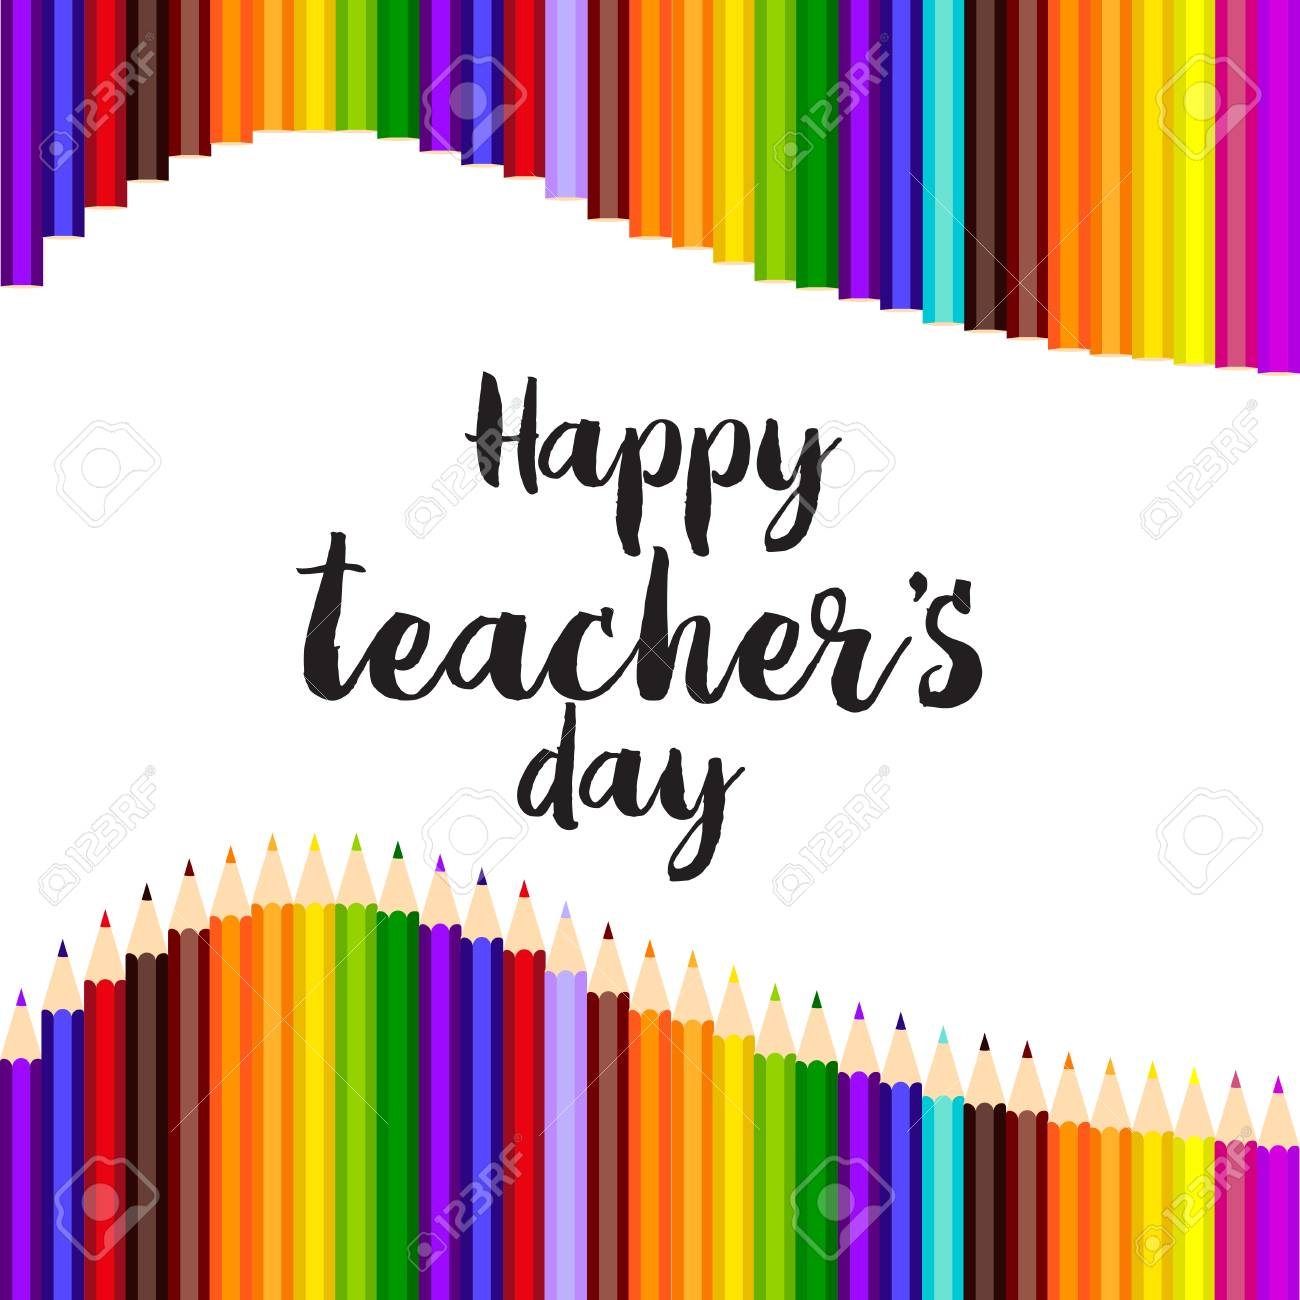 Happy Teacher's Day Greeting Card Template Design Royalty Free - Free Printable Teacher's Day Greeting Cards